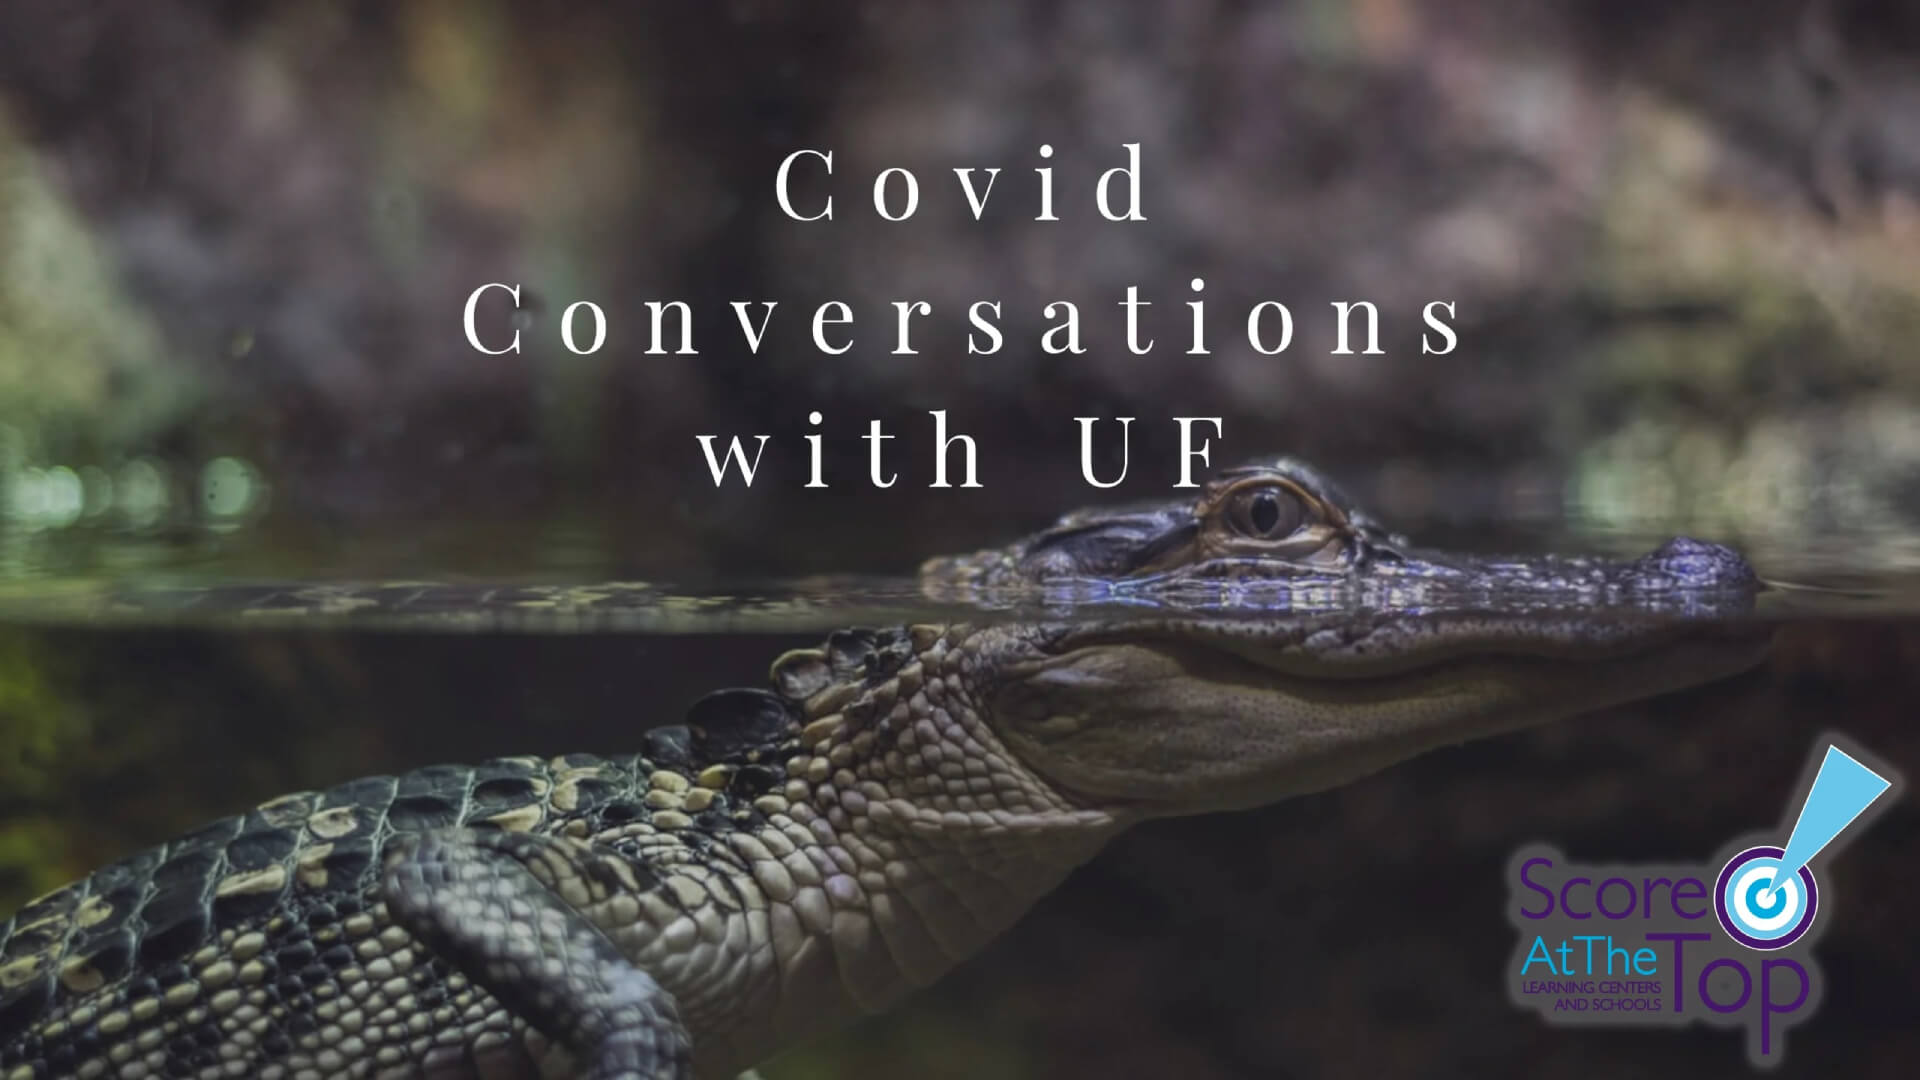 UF admissions information during Covid-19